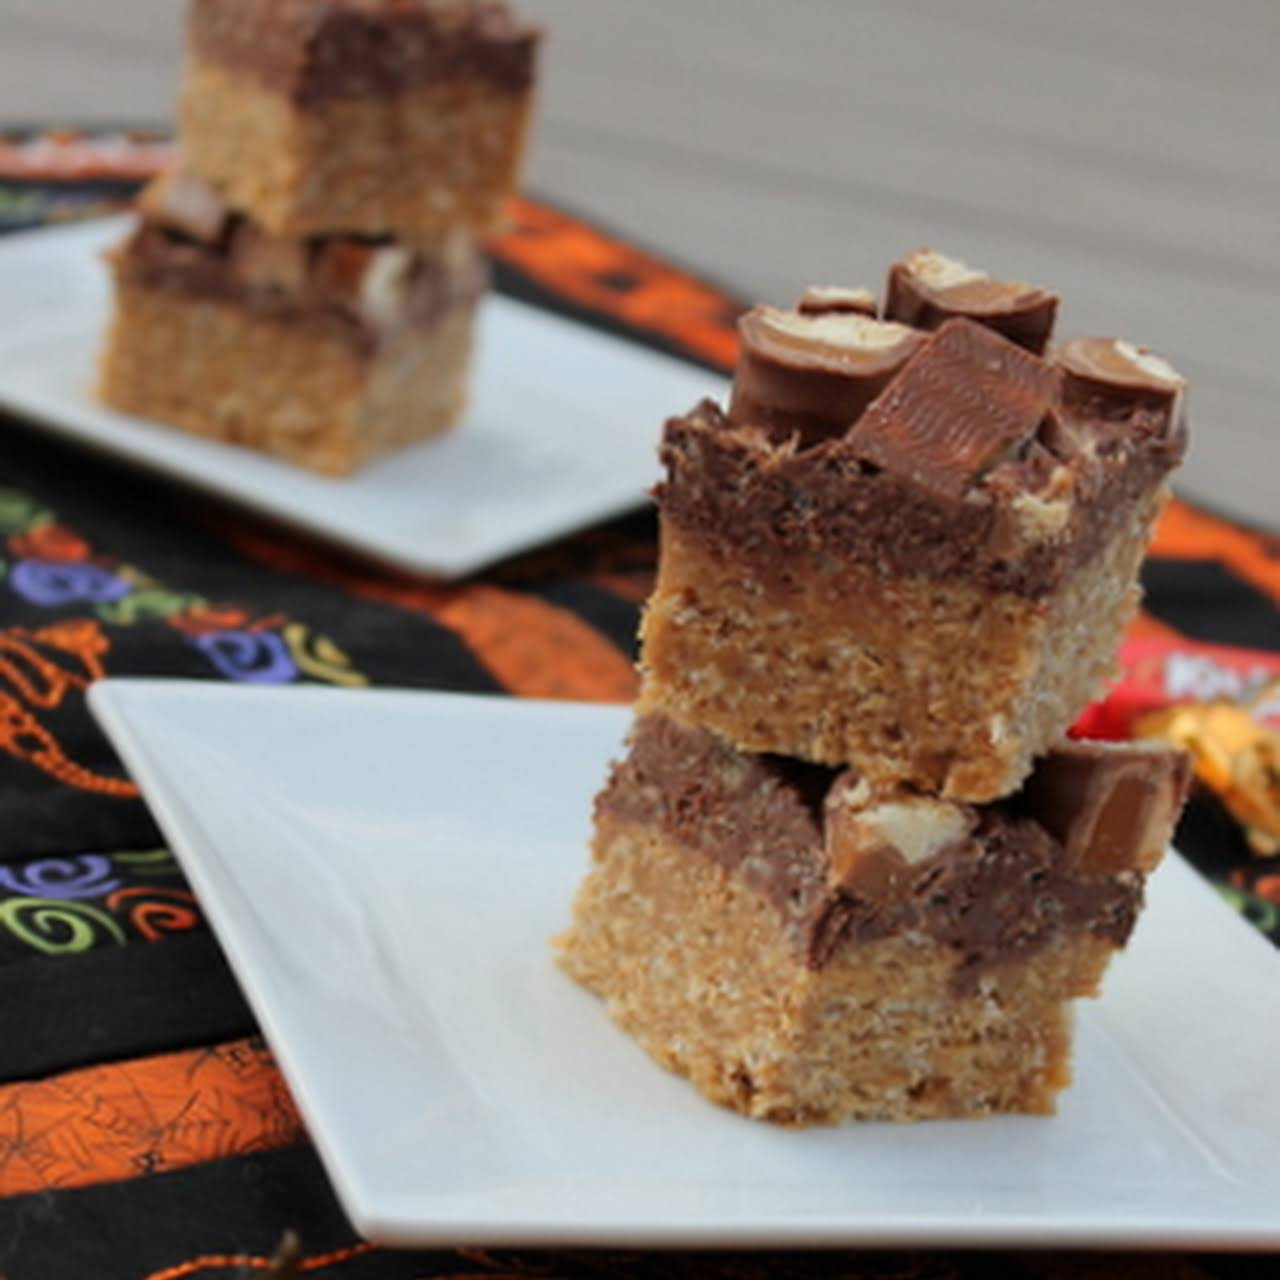 Leftover Candy Peanut Butter Chocolate Crunch Bars